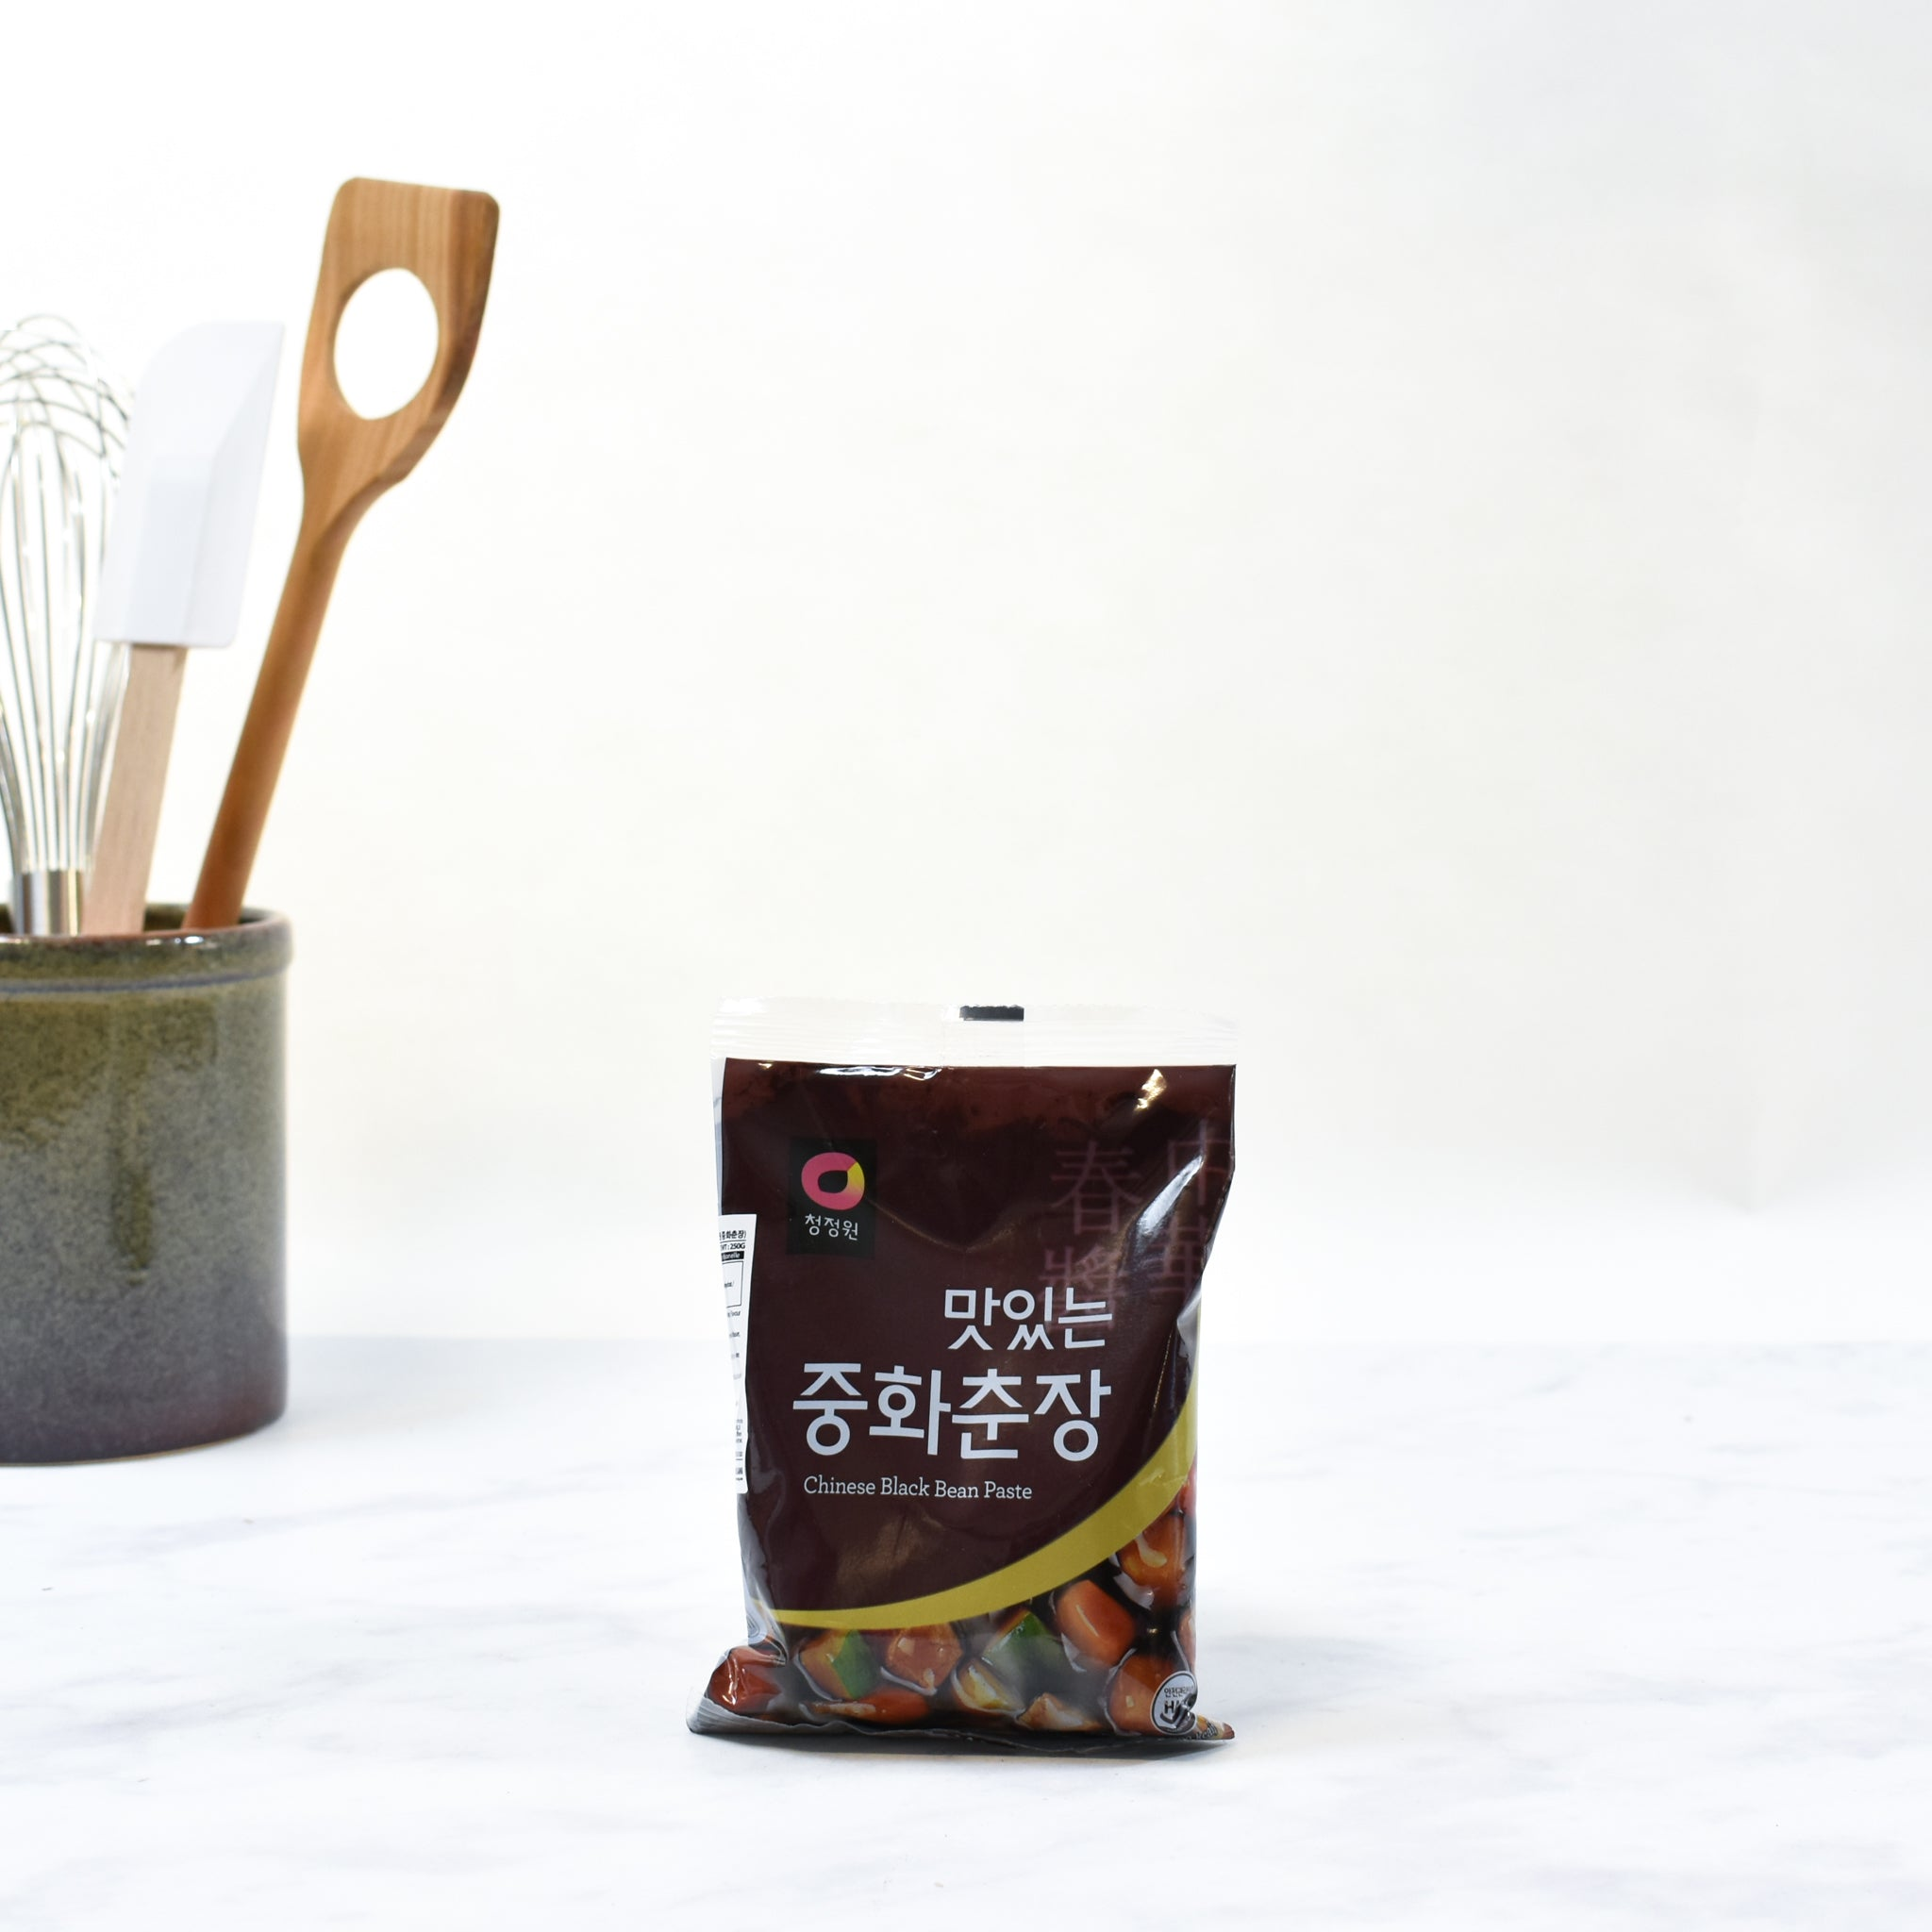 Chung Jung One Chunjang Korean Black Bean Paste 250g Ingredients Sauces & Condiments Asian Sauces & Condiments Korean Food Lifestyle Packaging Shot